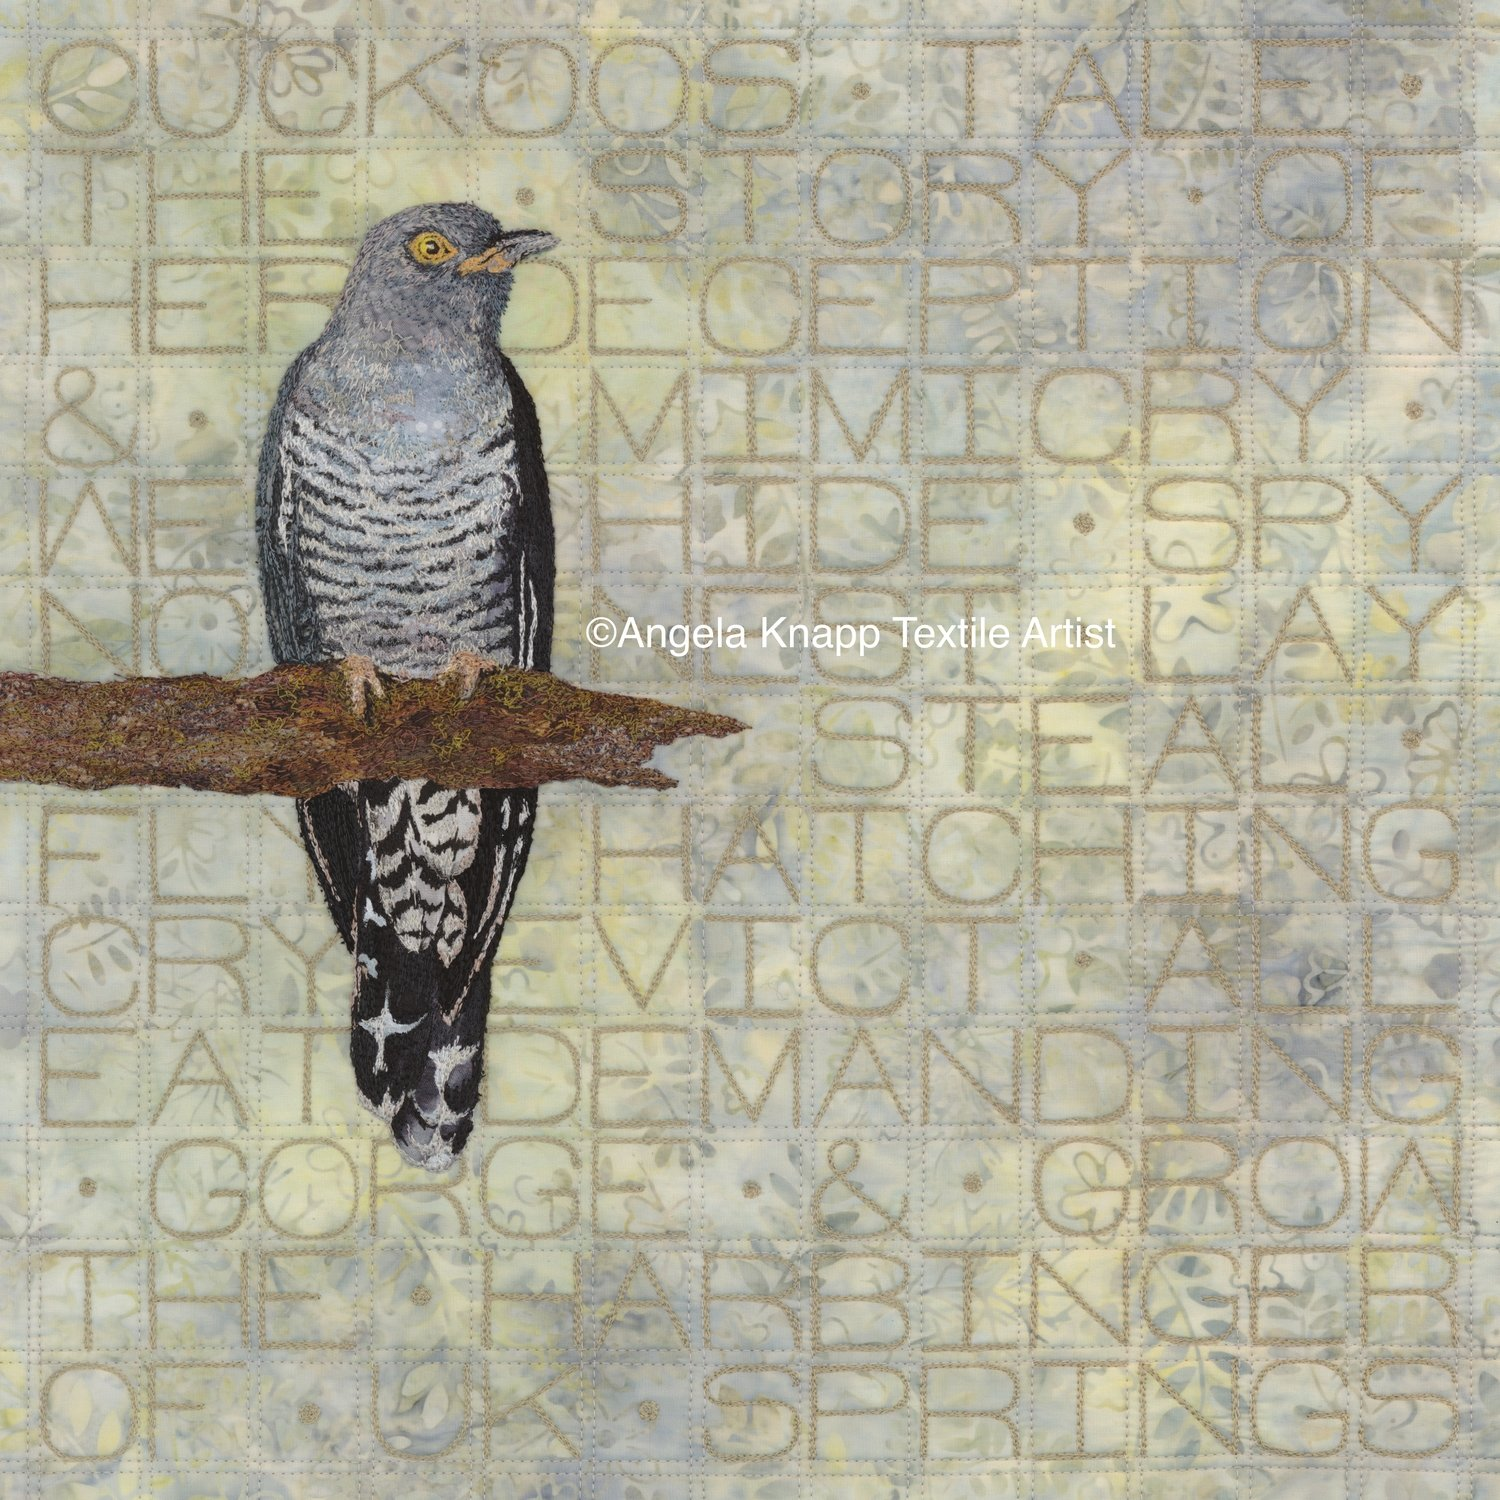 'A Cuckoo's Tale' - Limited Edition Giclee Print